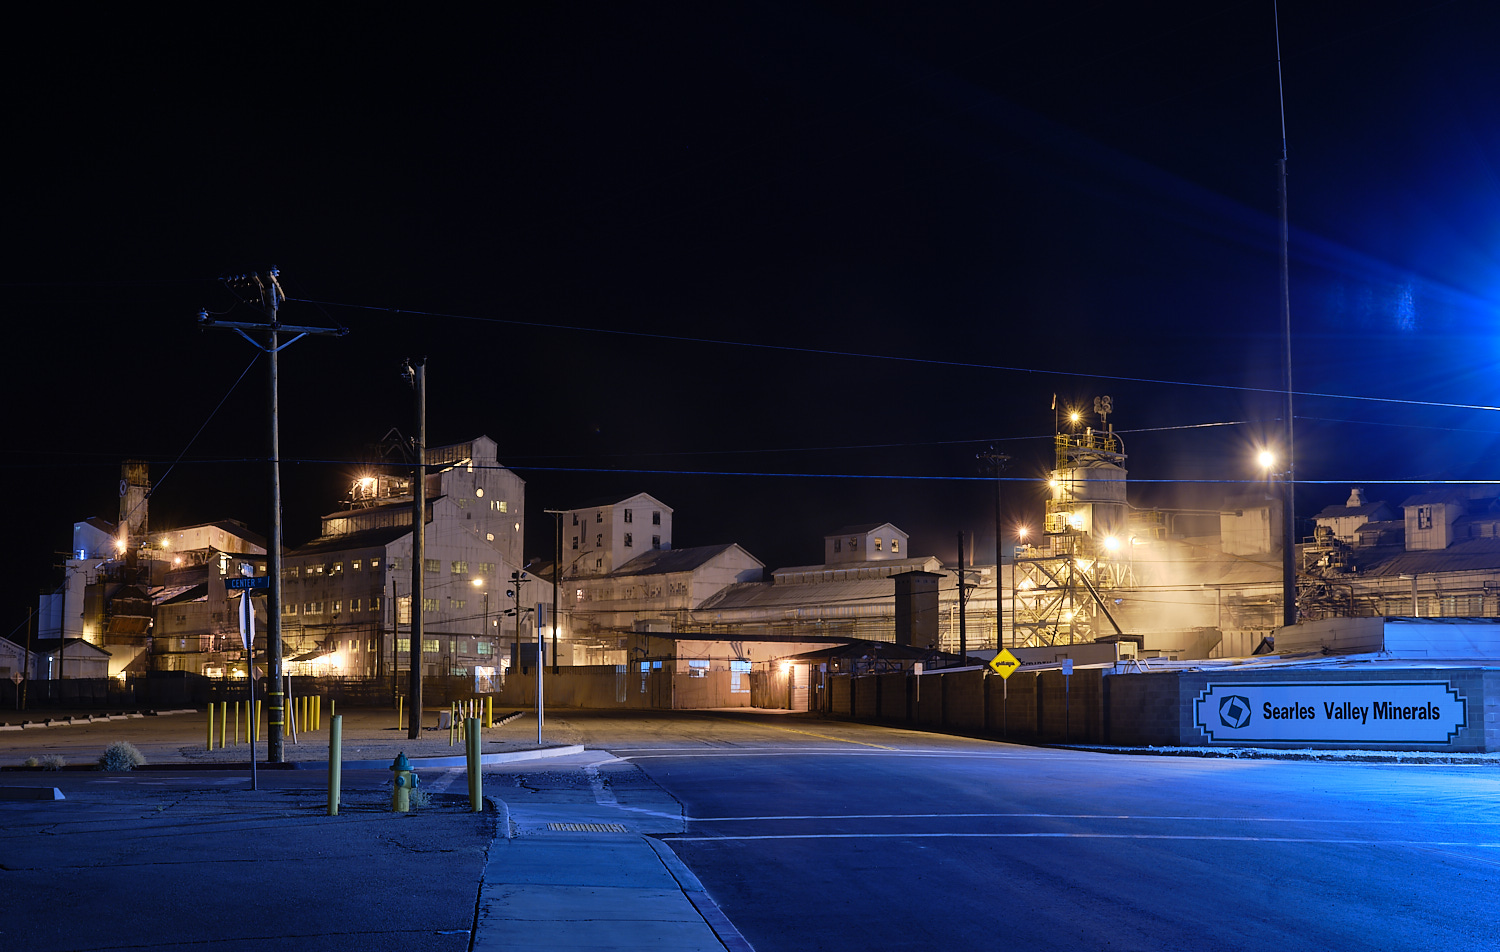 Night shot of Searles Valley Minerals Plant, Trona, Ca. | Osceola Refetoff